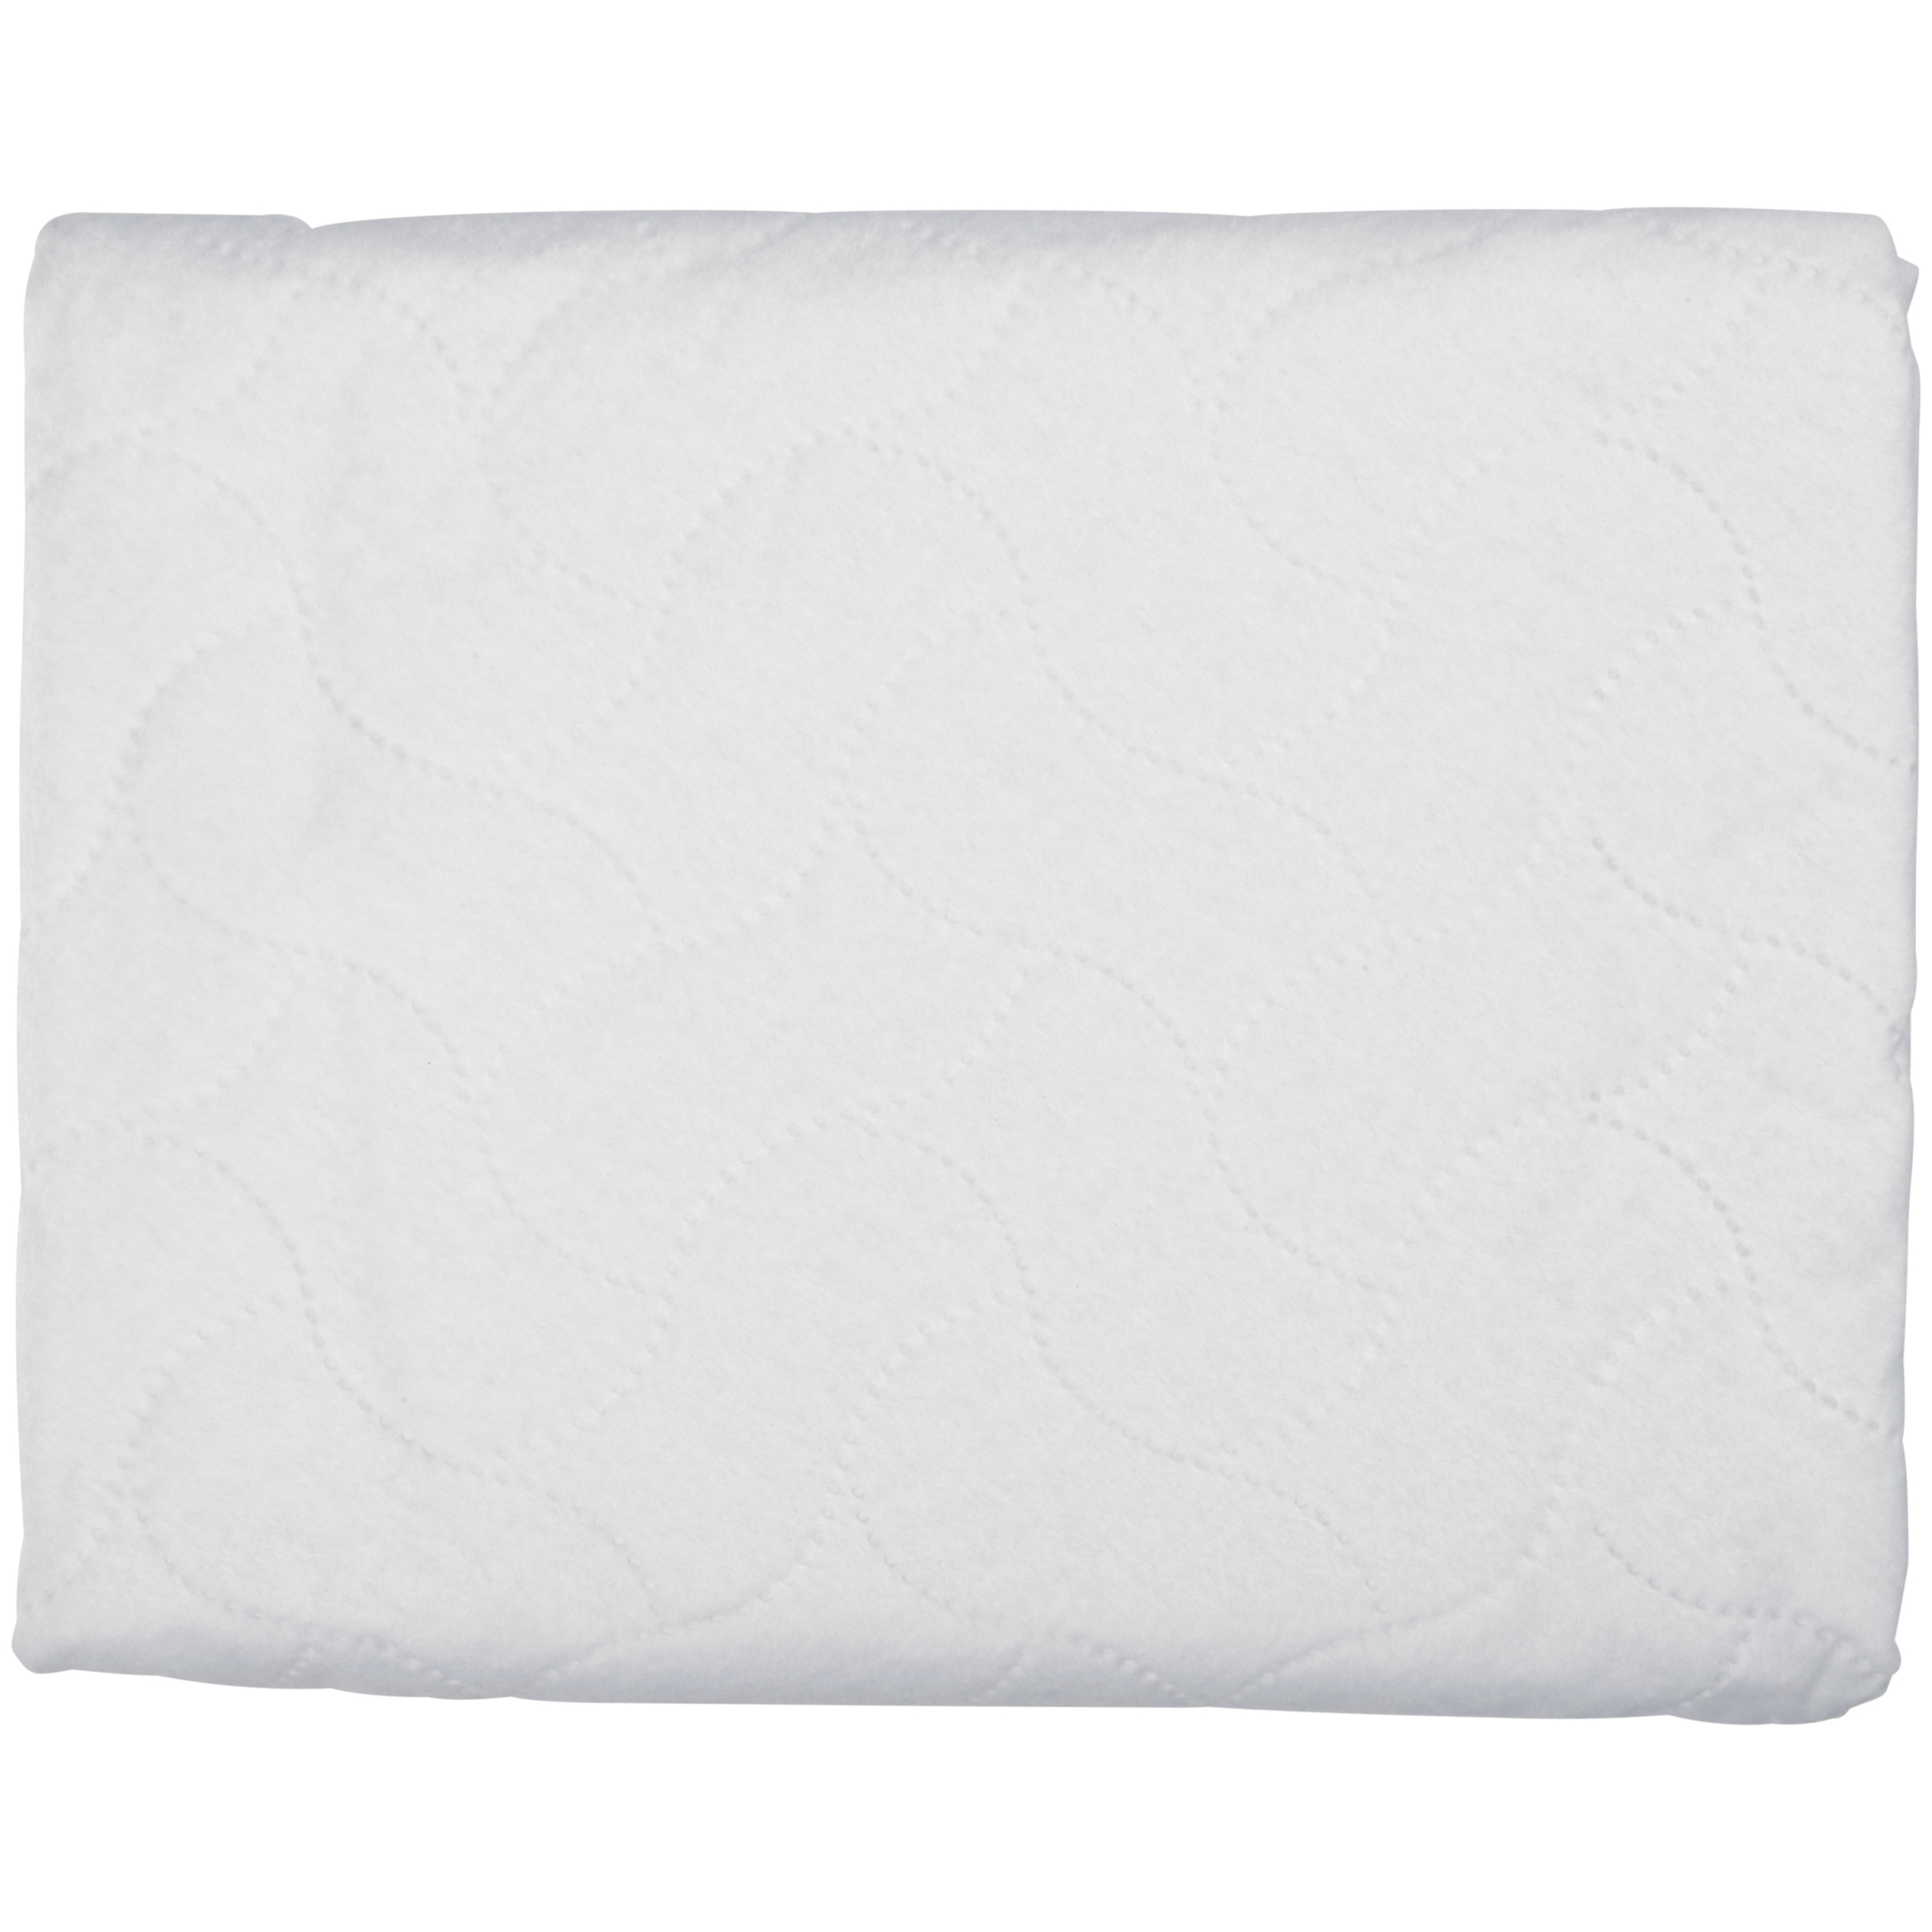 TL Care White Waterproof Quilted Pad by TL Care Inc